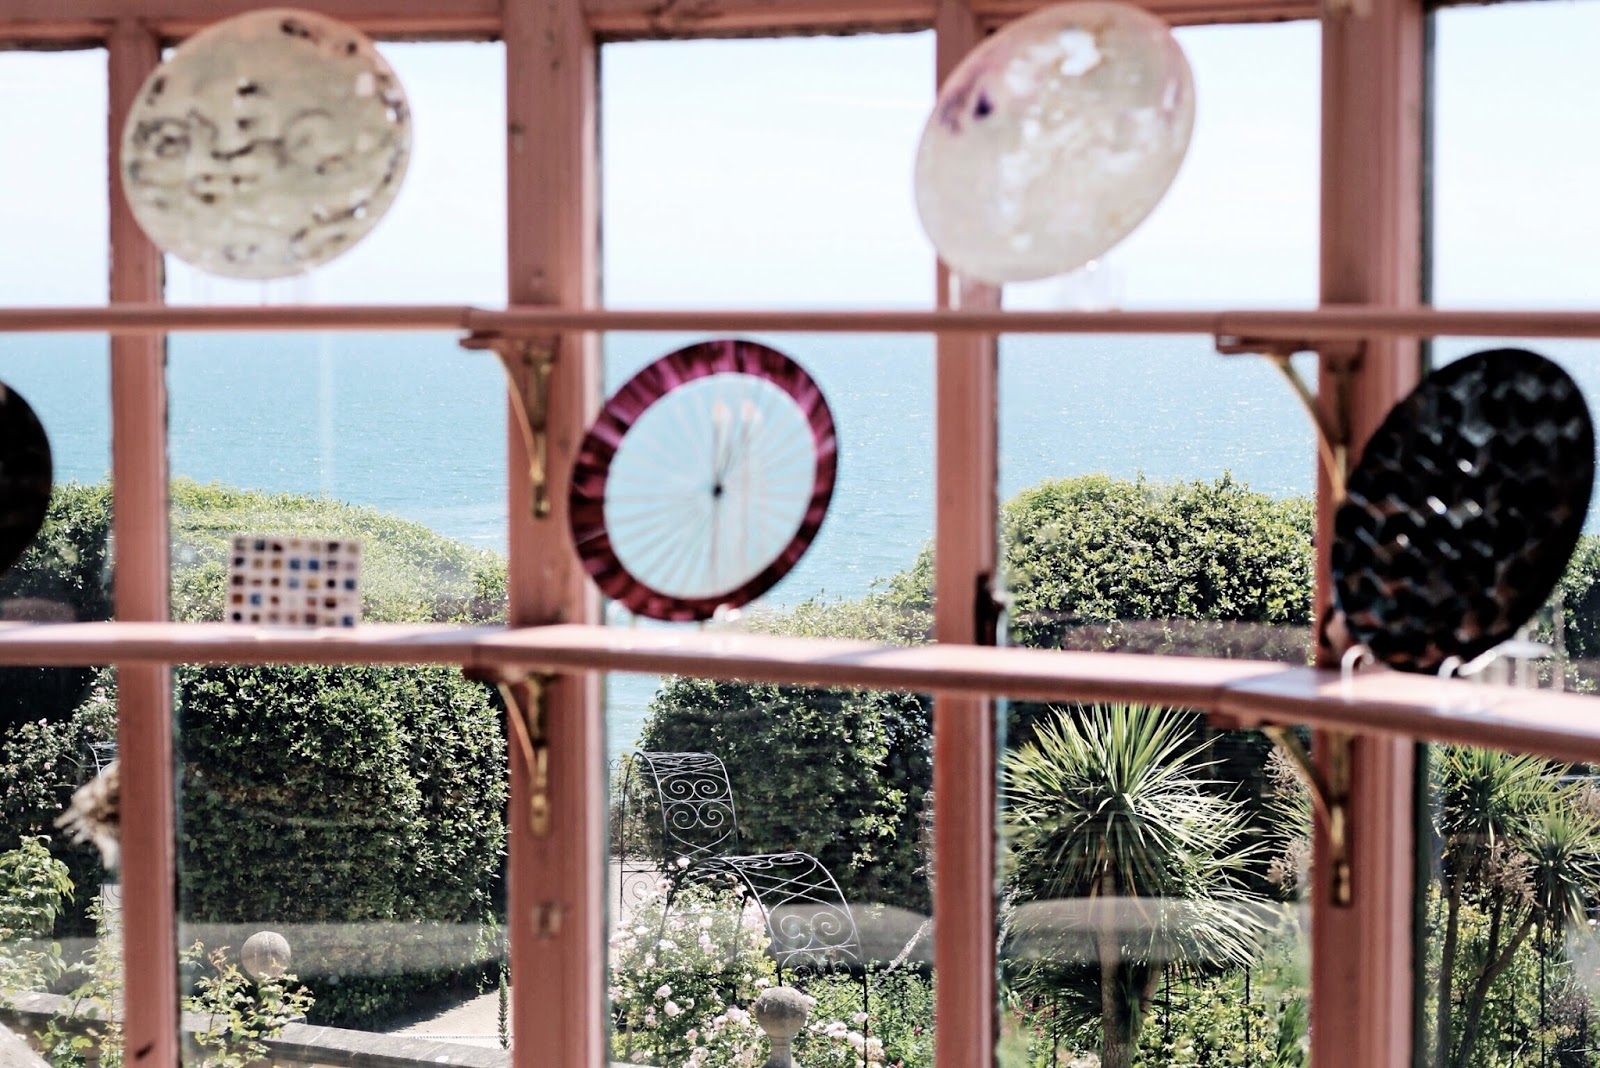 Summer sea views from Russell-Cotes museum